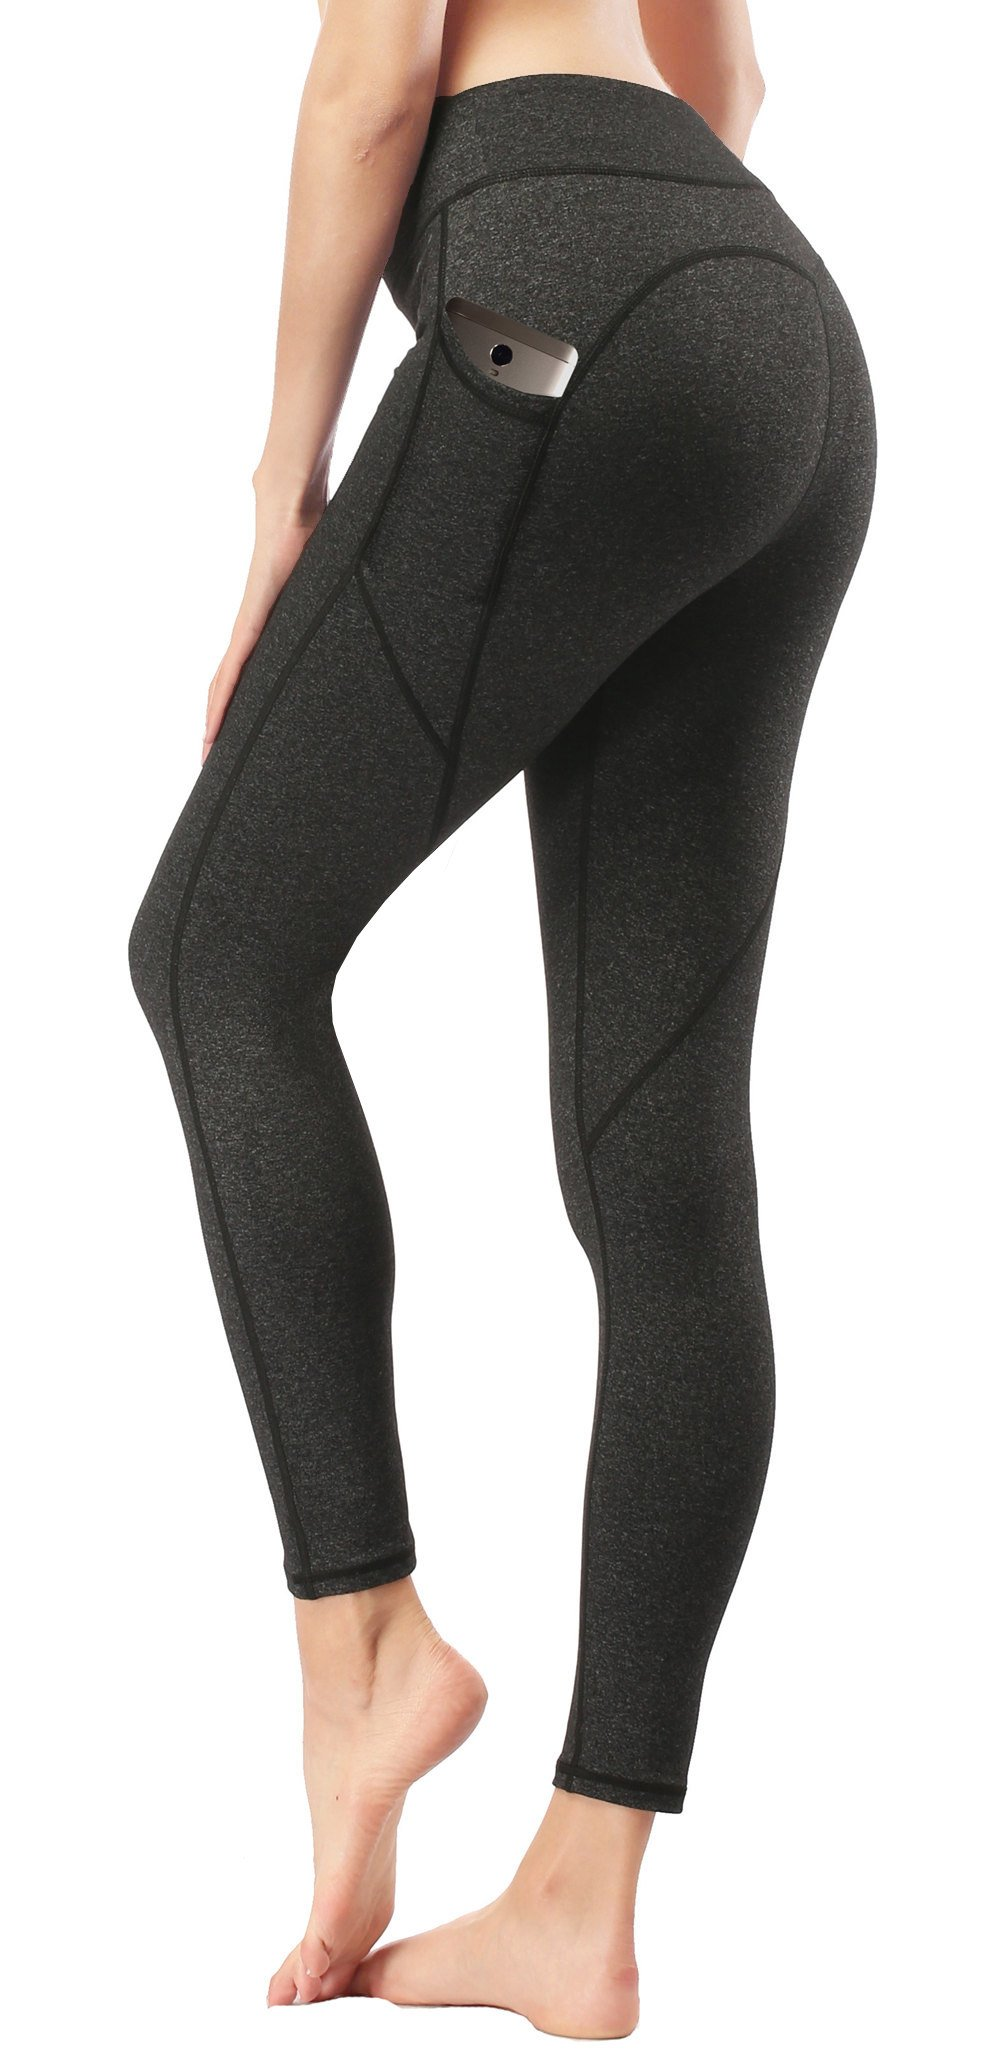 Dragon Fit Pockets Compression Yoga Pants Tummy Control 4 Way Stretch Workout Running Yoga Leggings Non See-Through